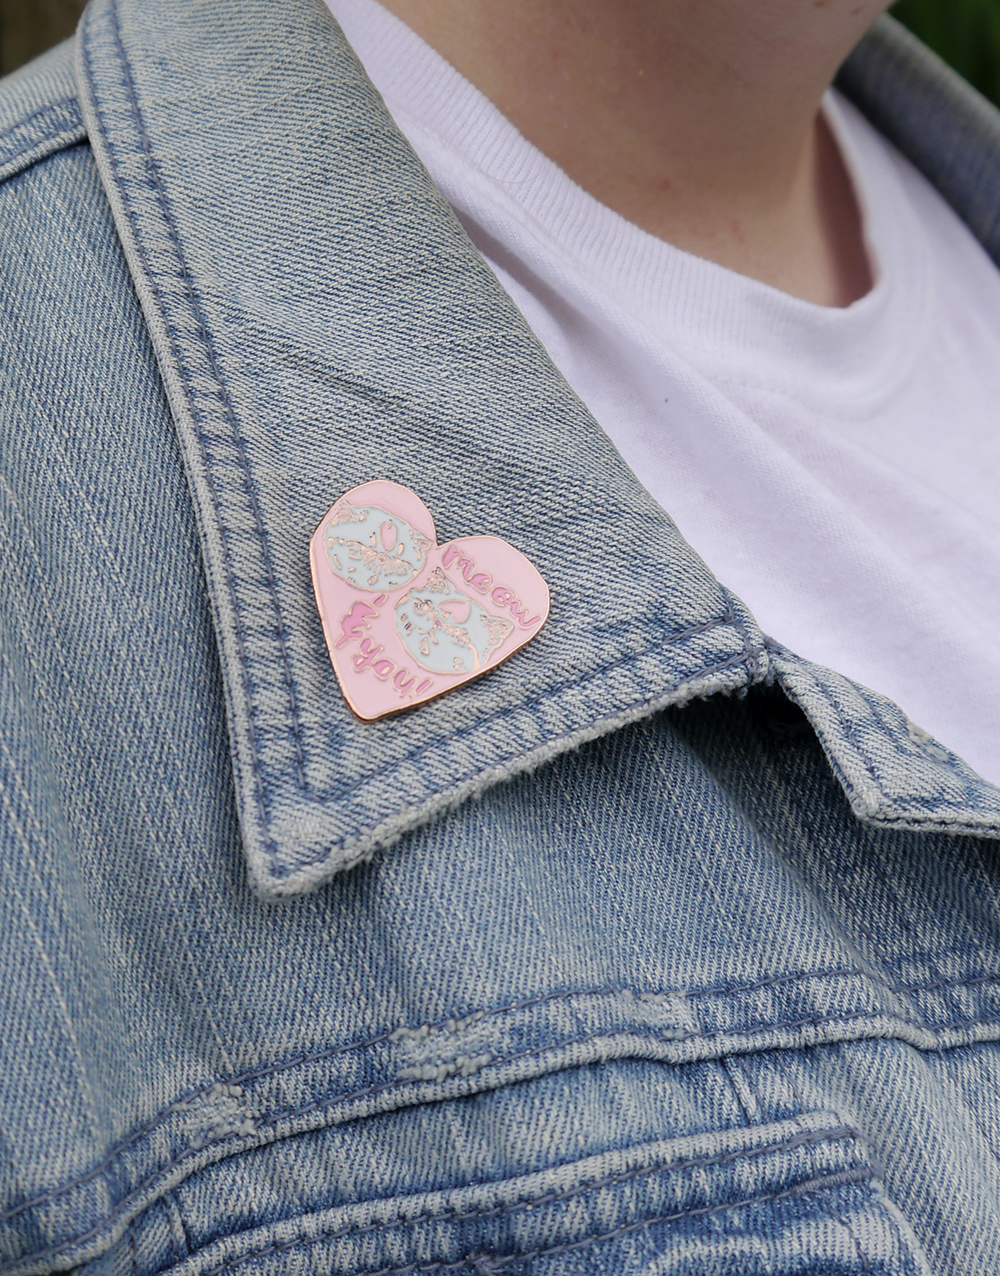 Meow & you pink cat enamal pin badge by Hello Harriet and Lucky Dip Club worn on a denim jacket